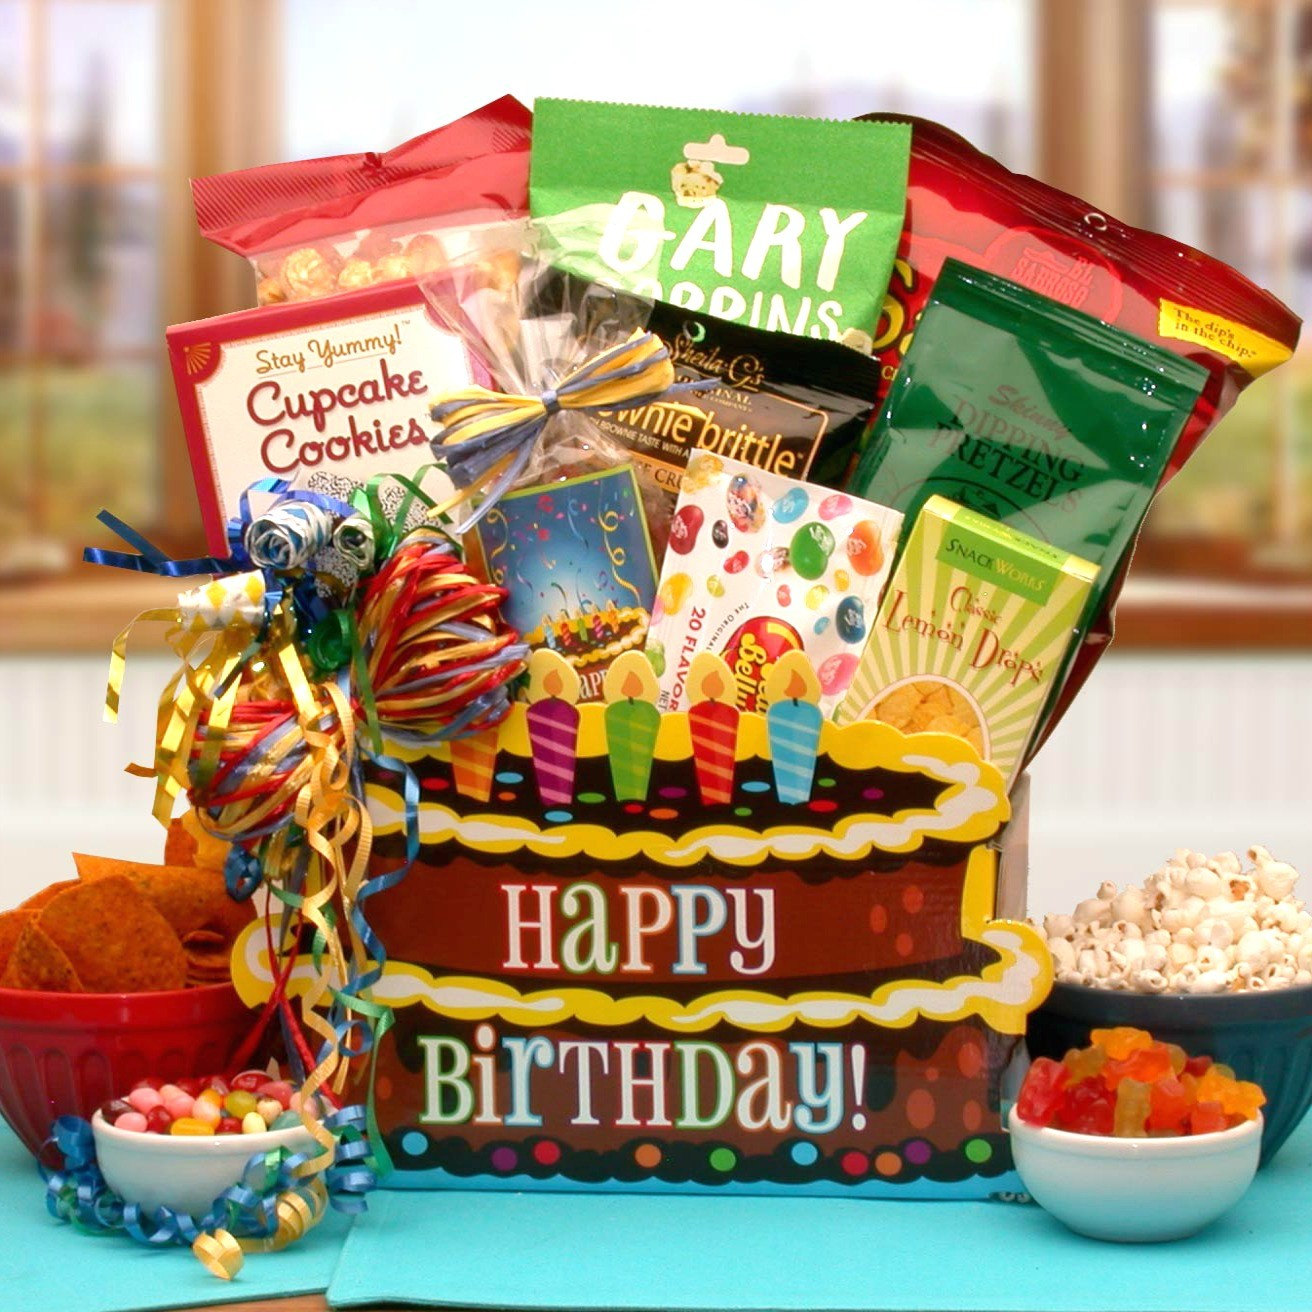 You take the cake happy birthday gift box birthday cake gift box loading zoom negle Image collections